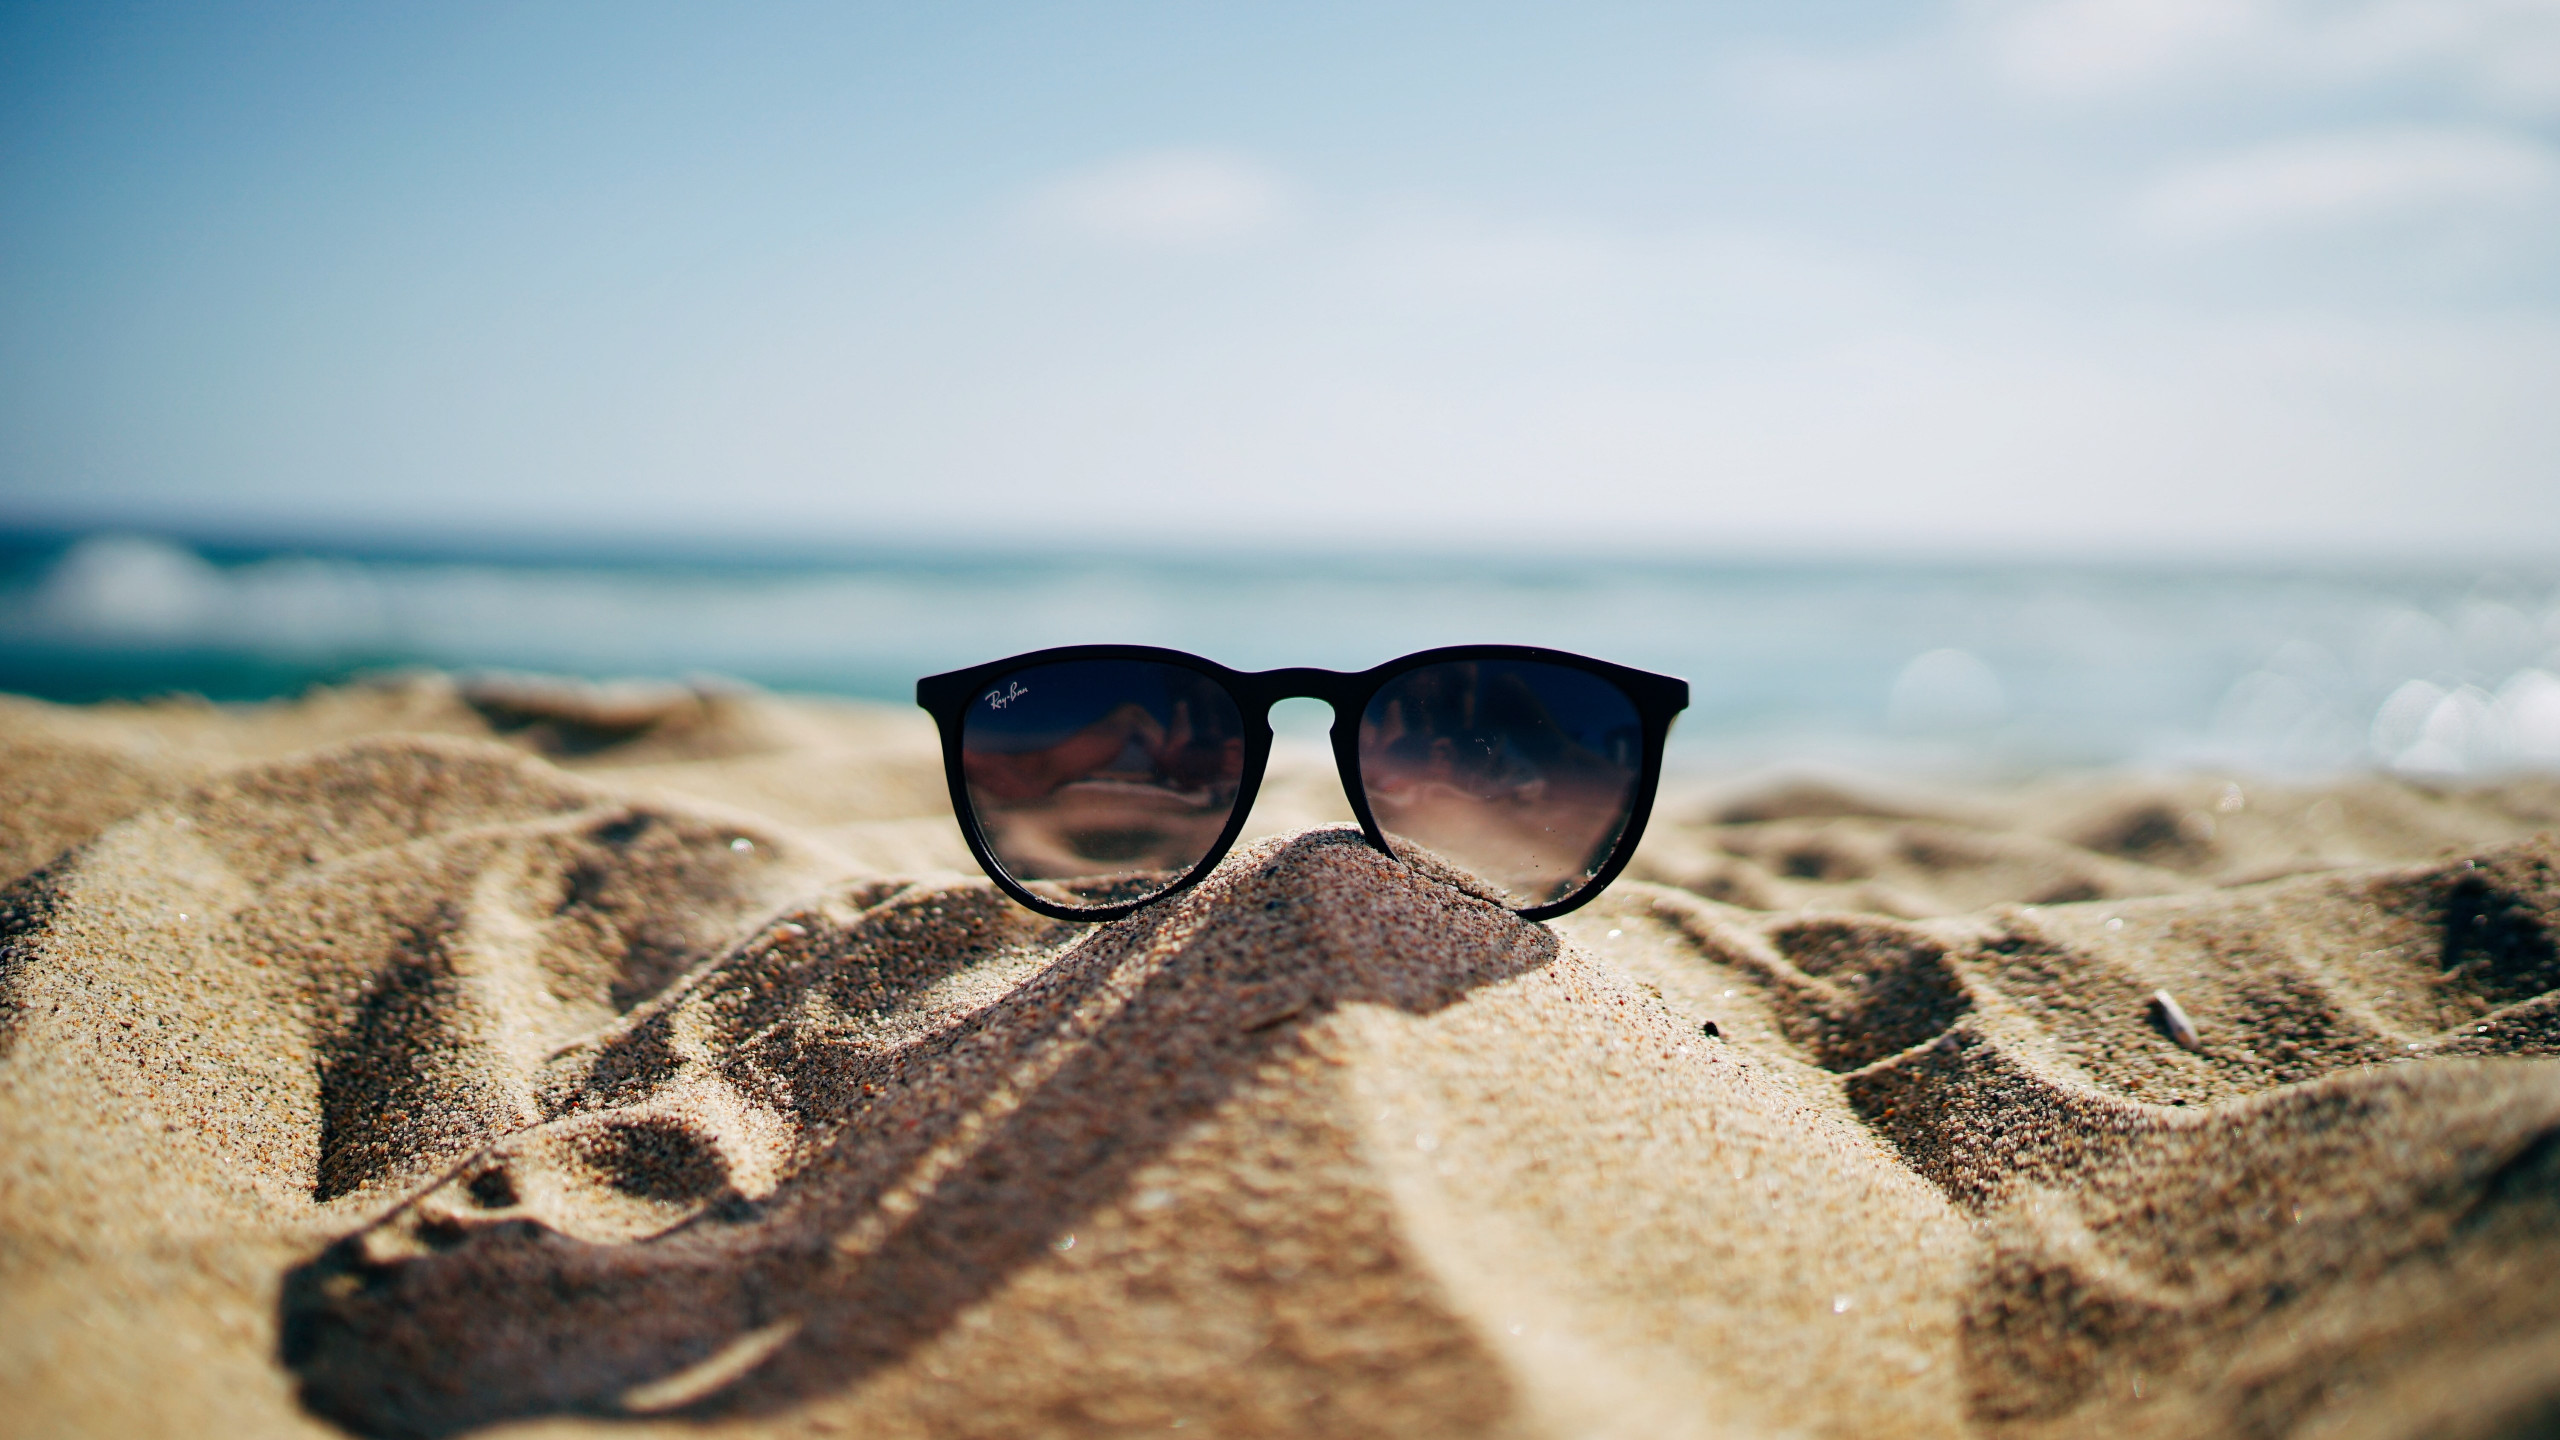 Ray Ban sunglasses on hot sand beach | 2560x1440 wallpaper